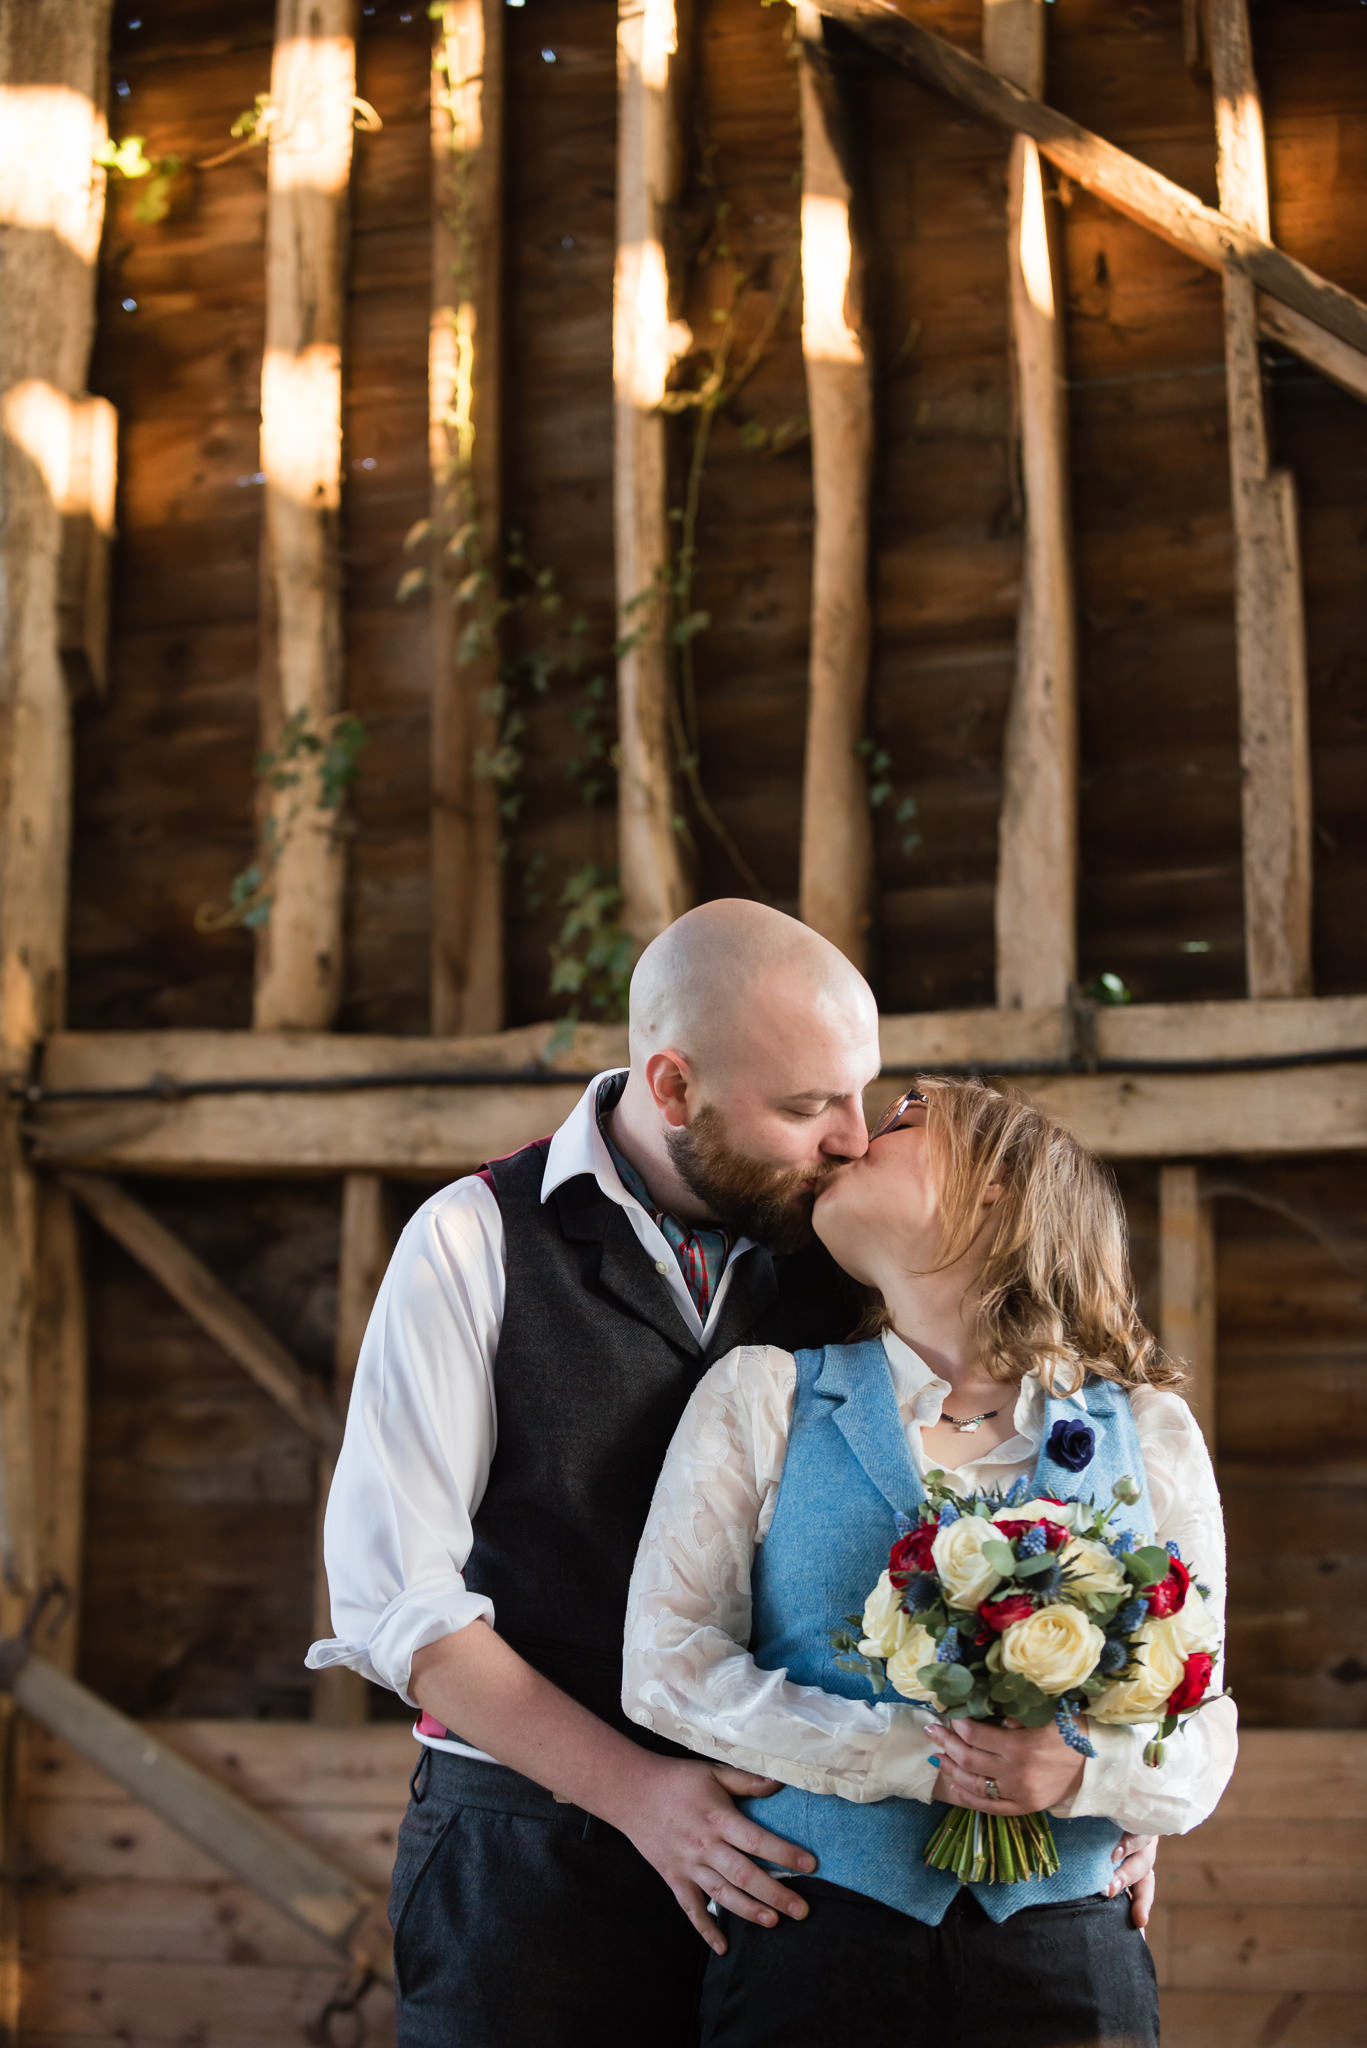 A portrait of the bride and groom at Woodoaks Farm